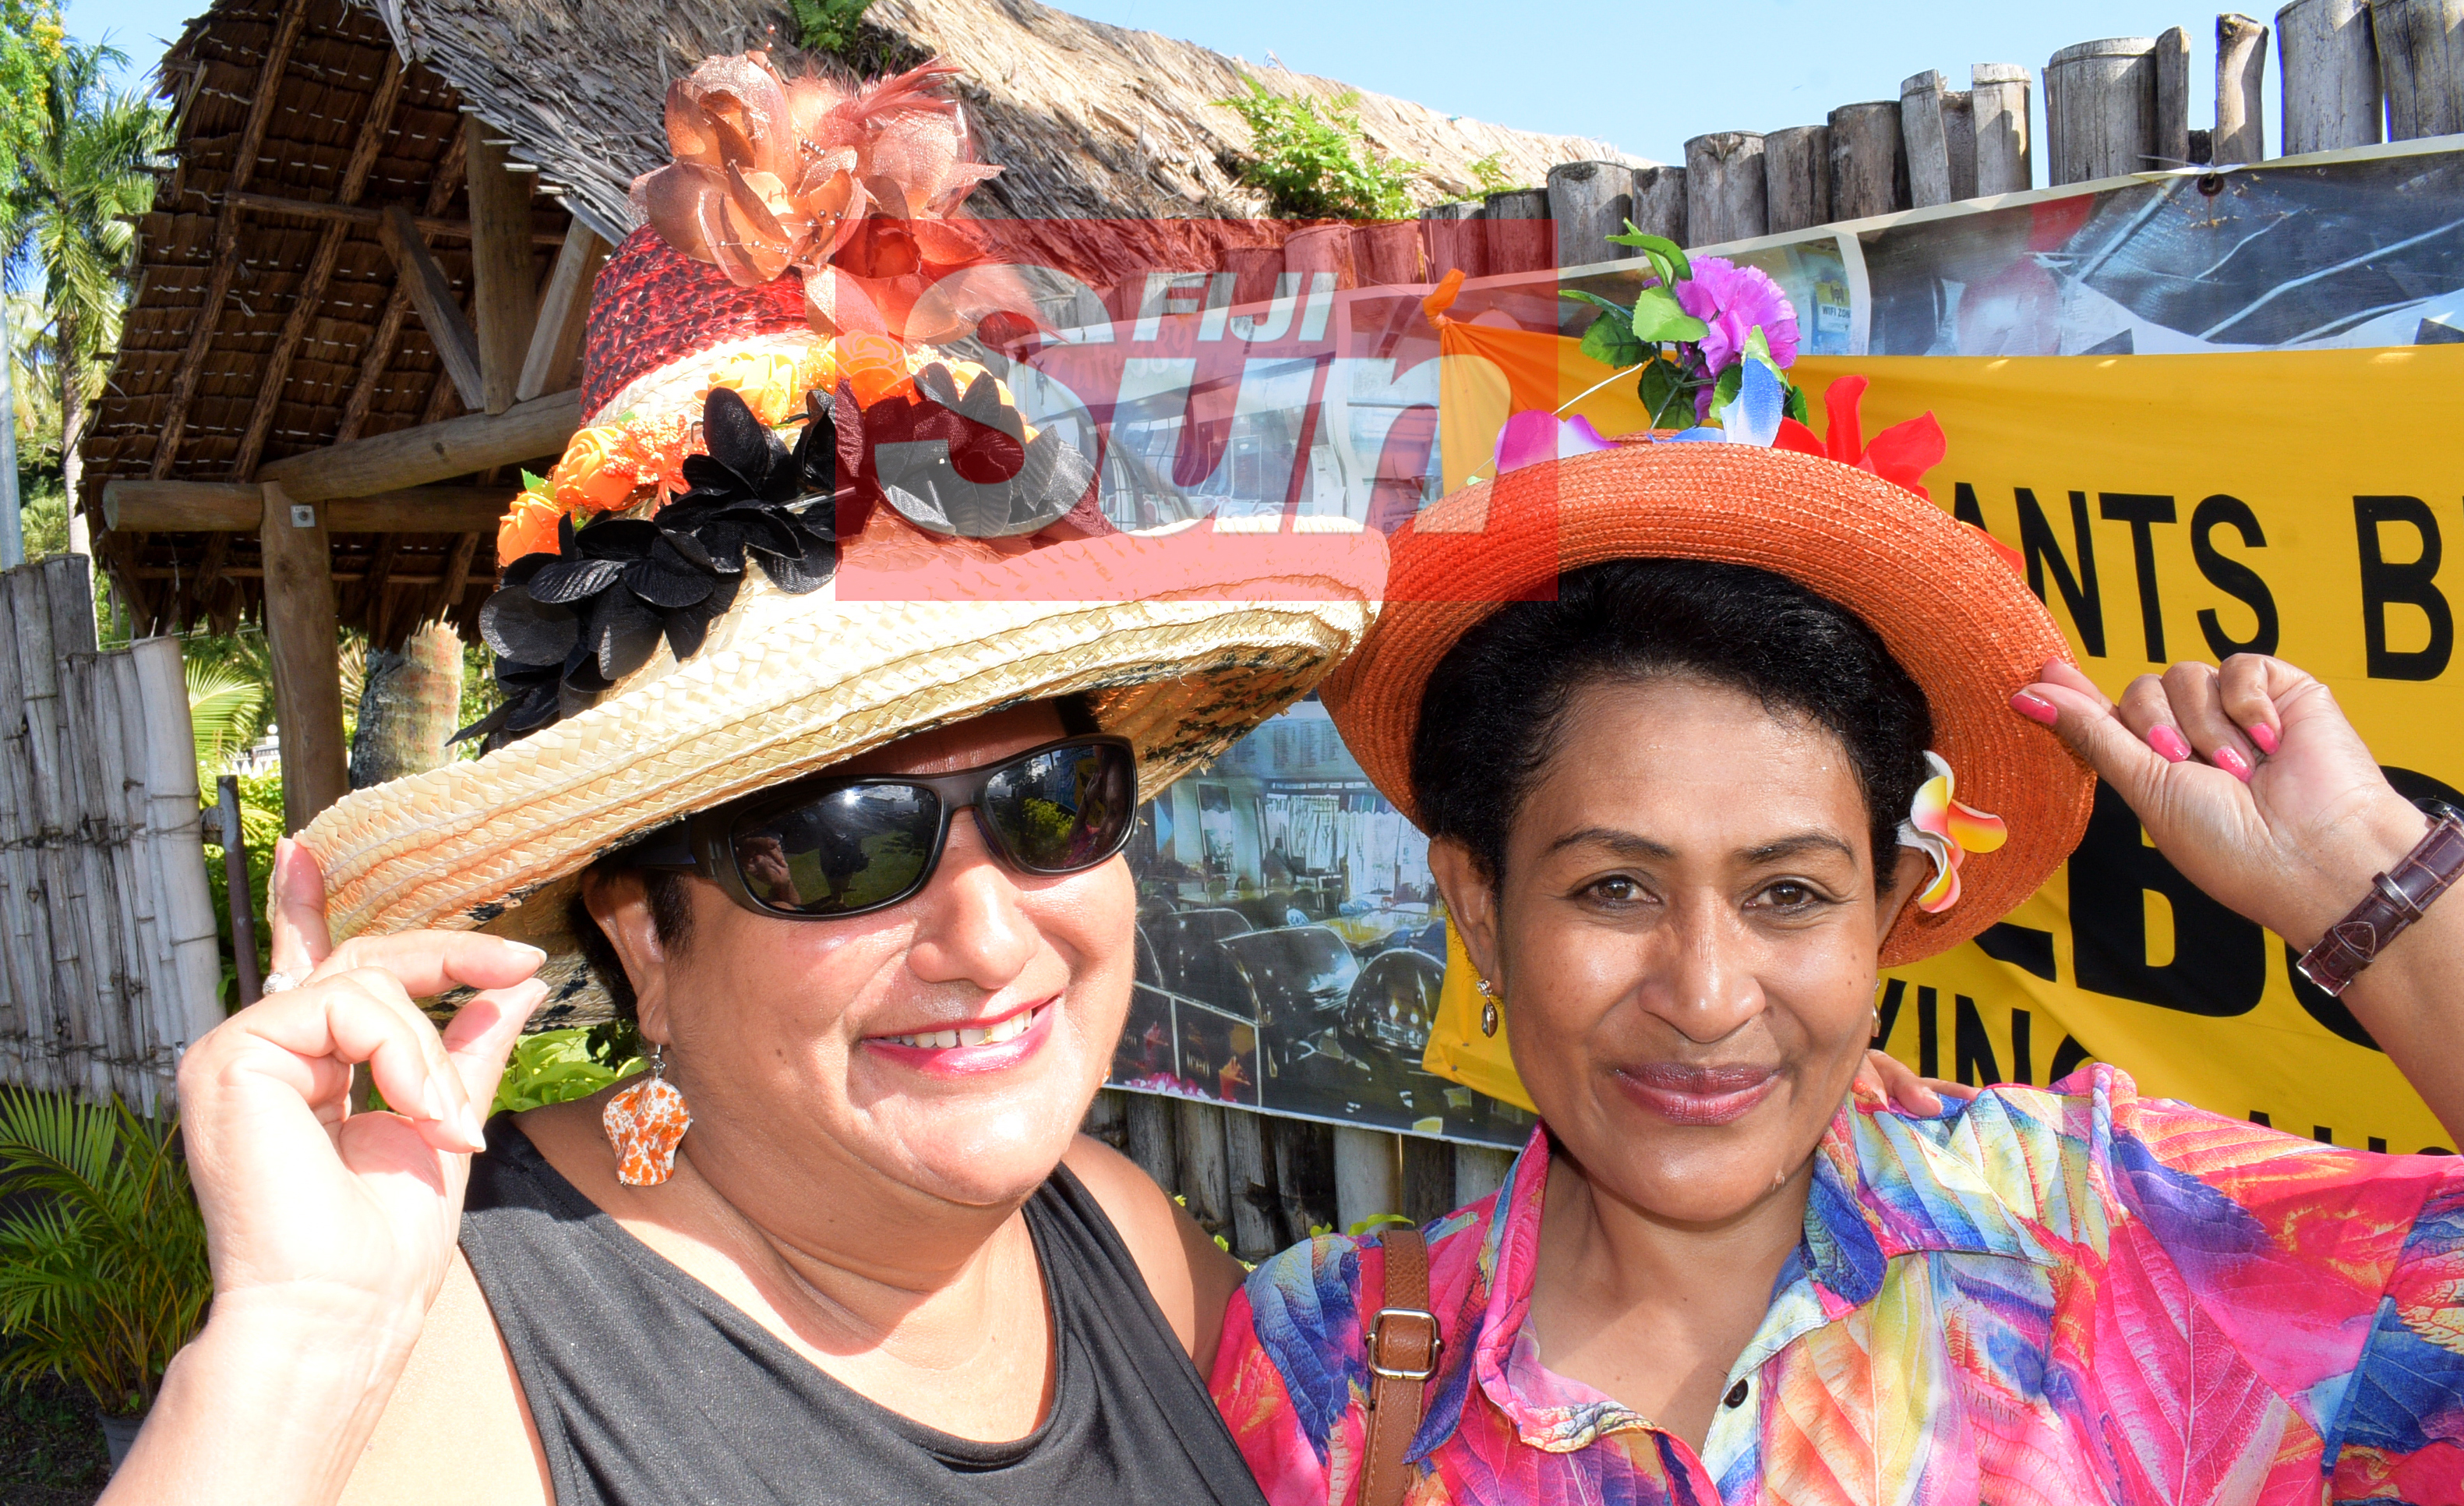 Malti Dumaru (left) Theresa Senimilivuki with their special Melbourne cup hats at Bowling Club in Suva on November 5, 2019. Photo: Ronald Kumar.